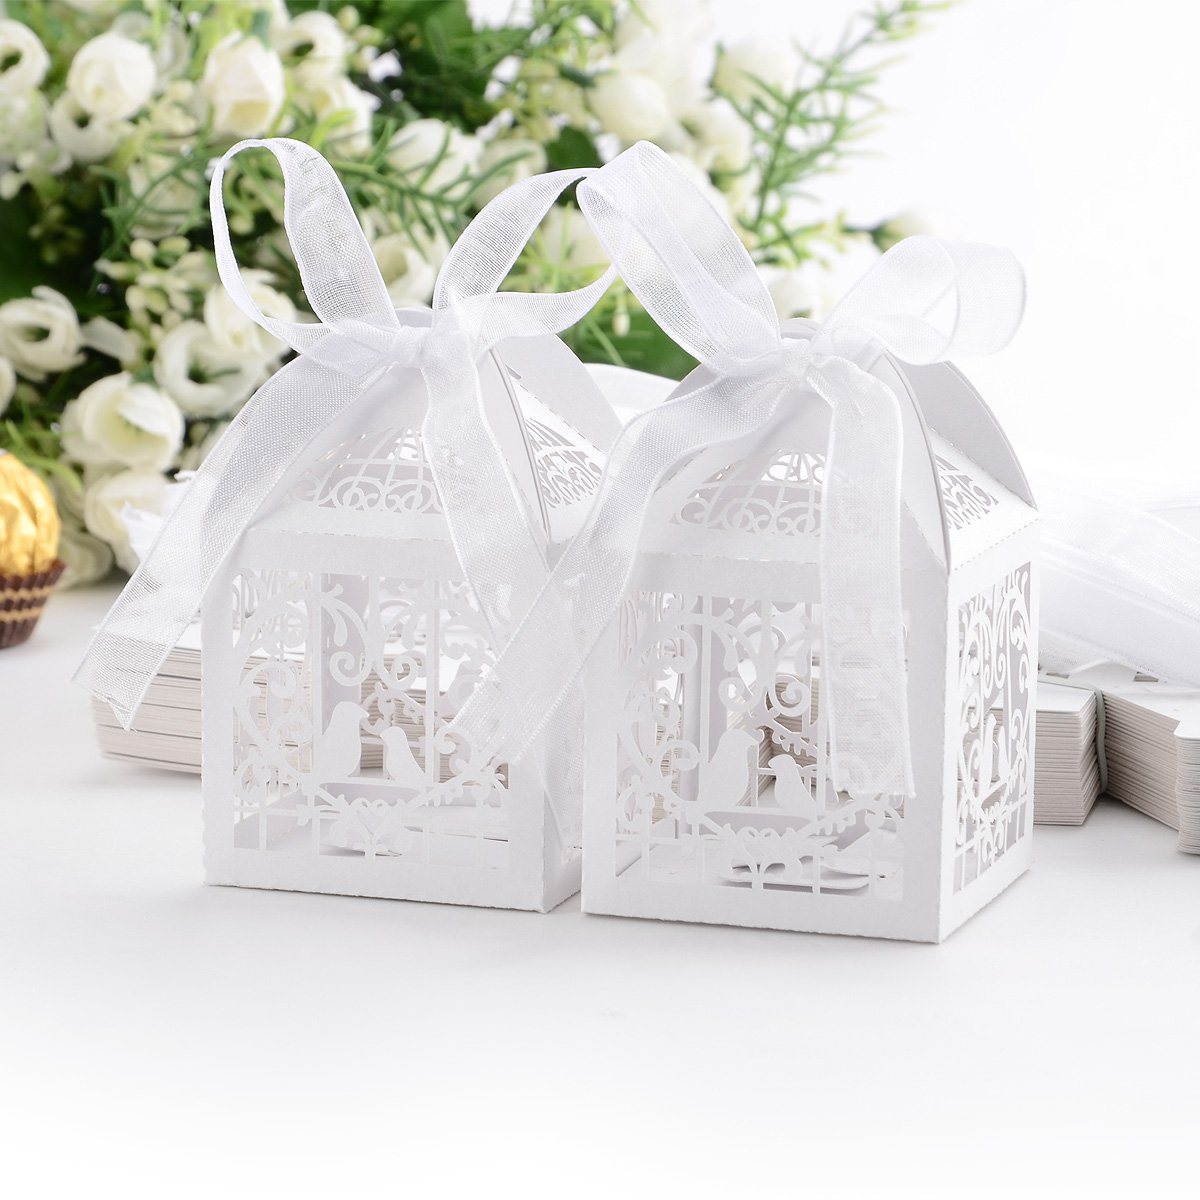 SZS Hot 50x Dragees Box Candy Heart White Bird Cage for Wedding Baptism